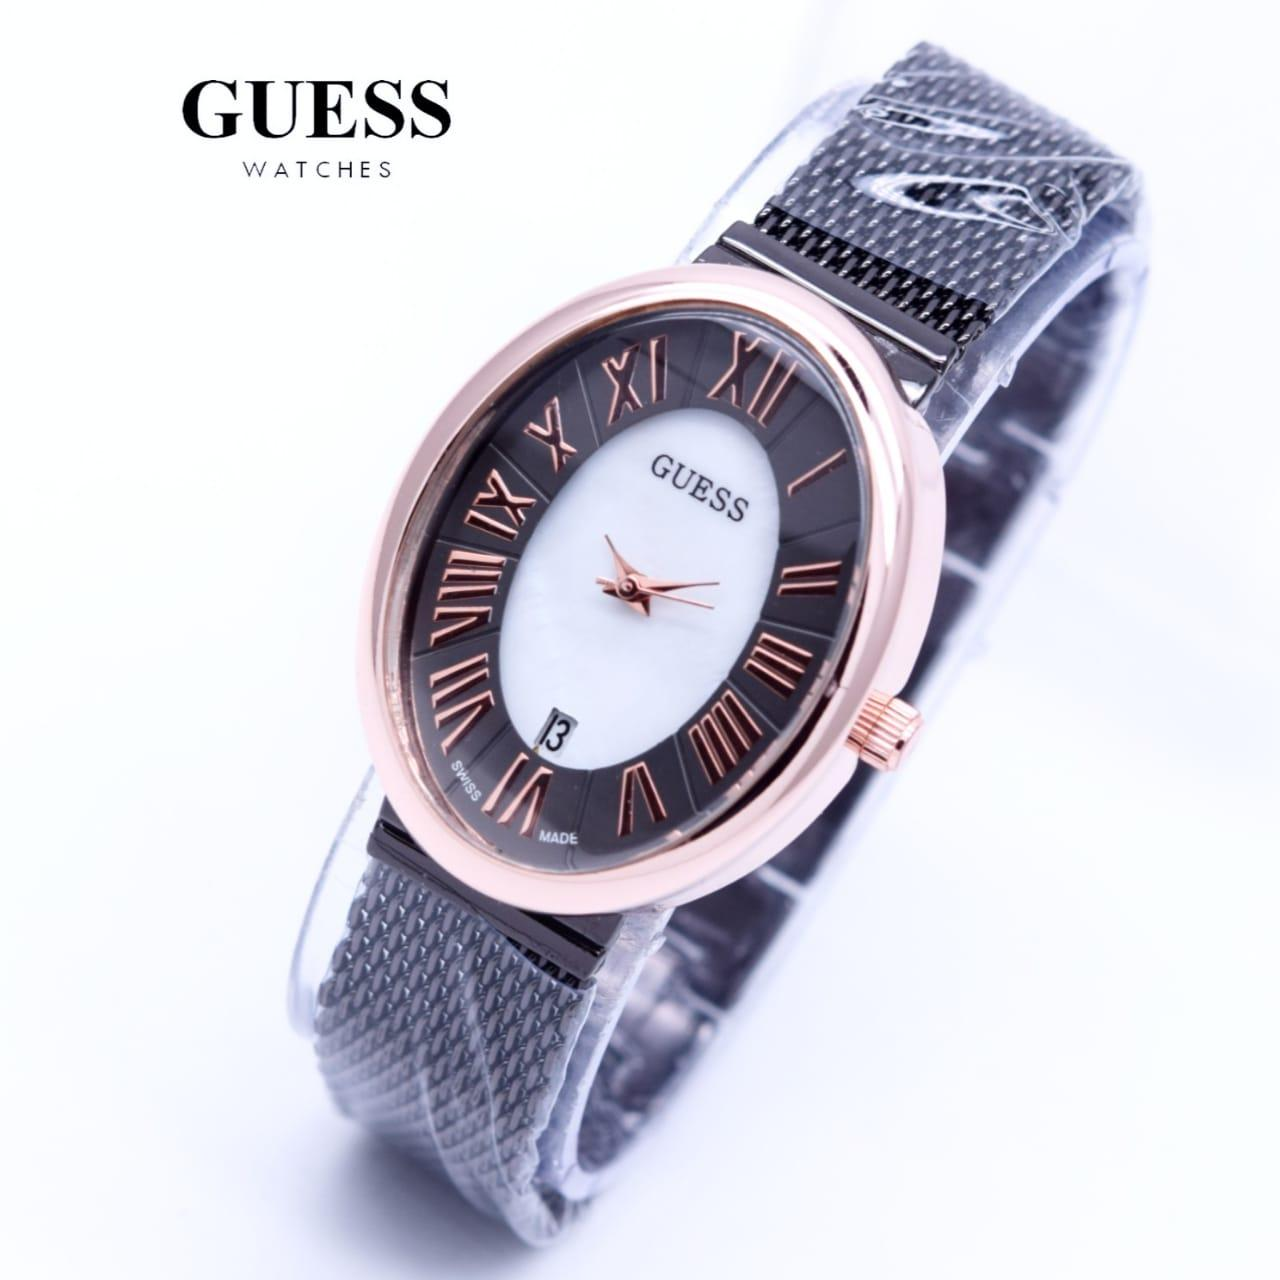 Guess Collection Gc Ladychic Y05009m7 Chronograph Jam Tangan Wanita Esquire Y08007g1 Pria Giordano Silver Komb Rosegold